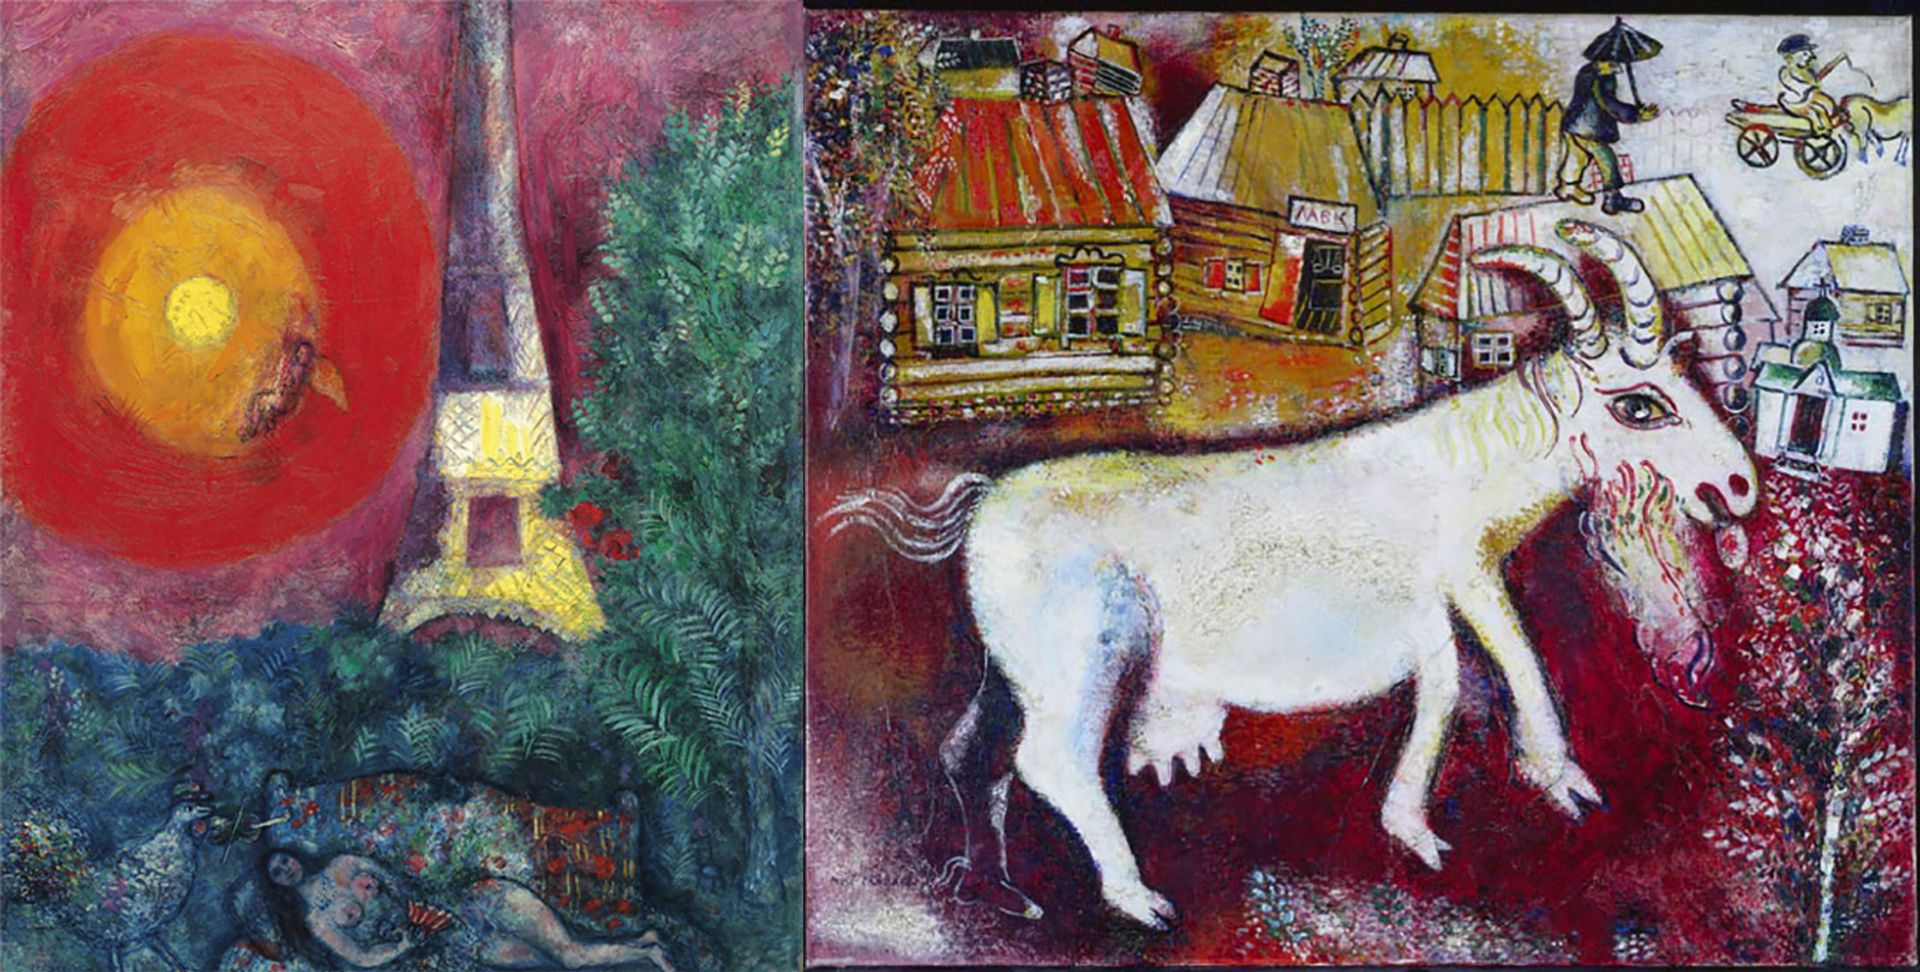 Marc Chagall's Eiffel Tower (1929) will hang next to his Memories of Childhood (1924) in the National Gallery of Canada's European paintings galleries National Gallery of Canada, Ottawa